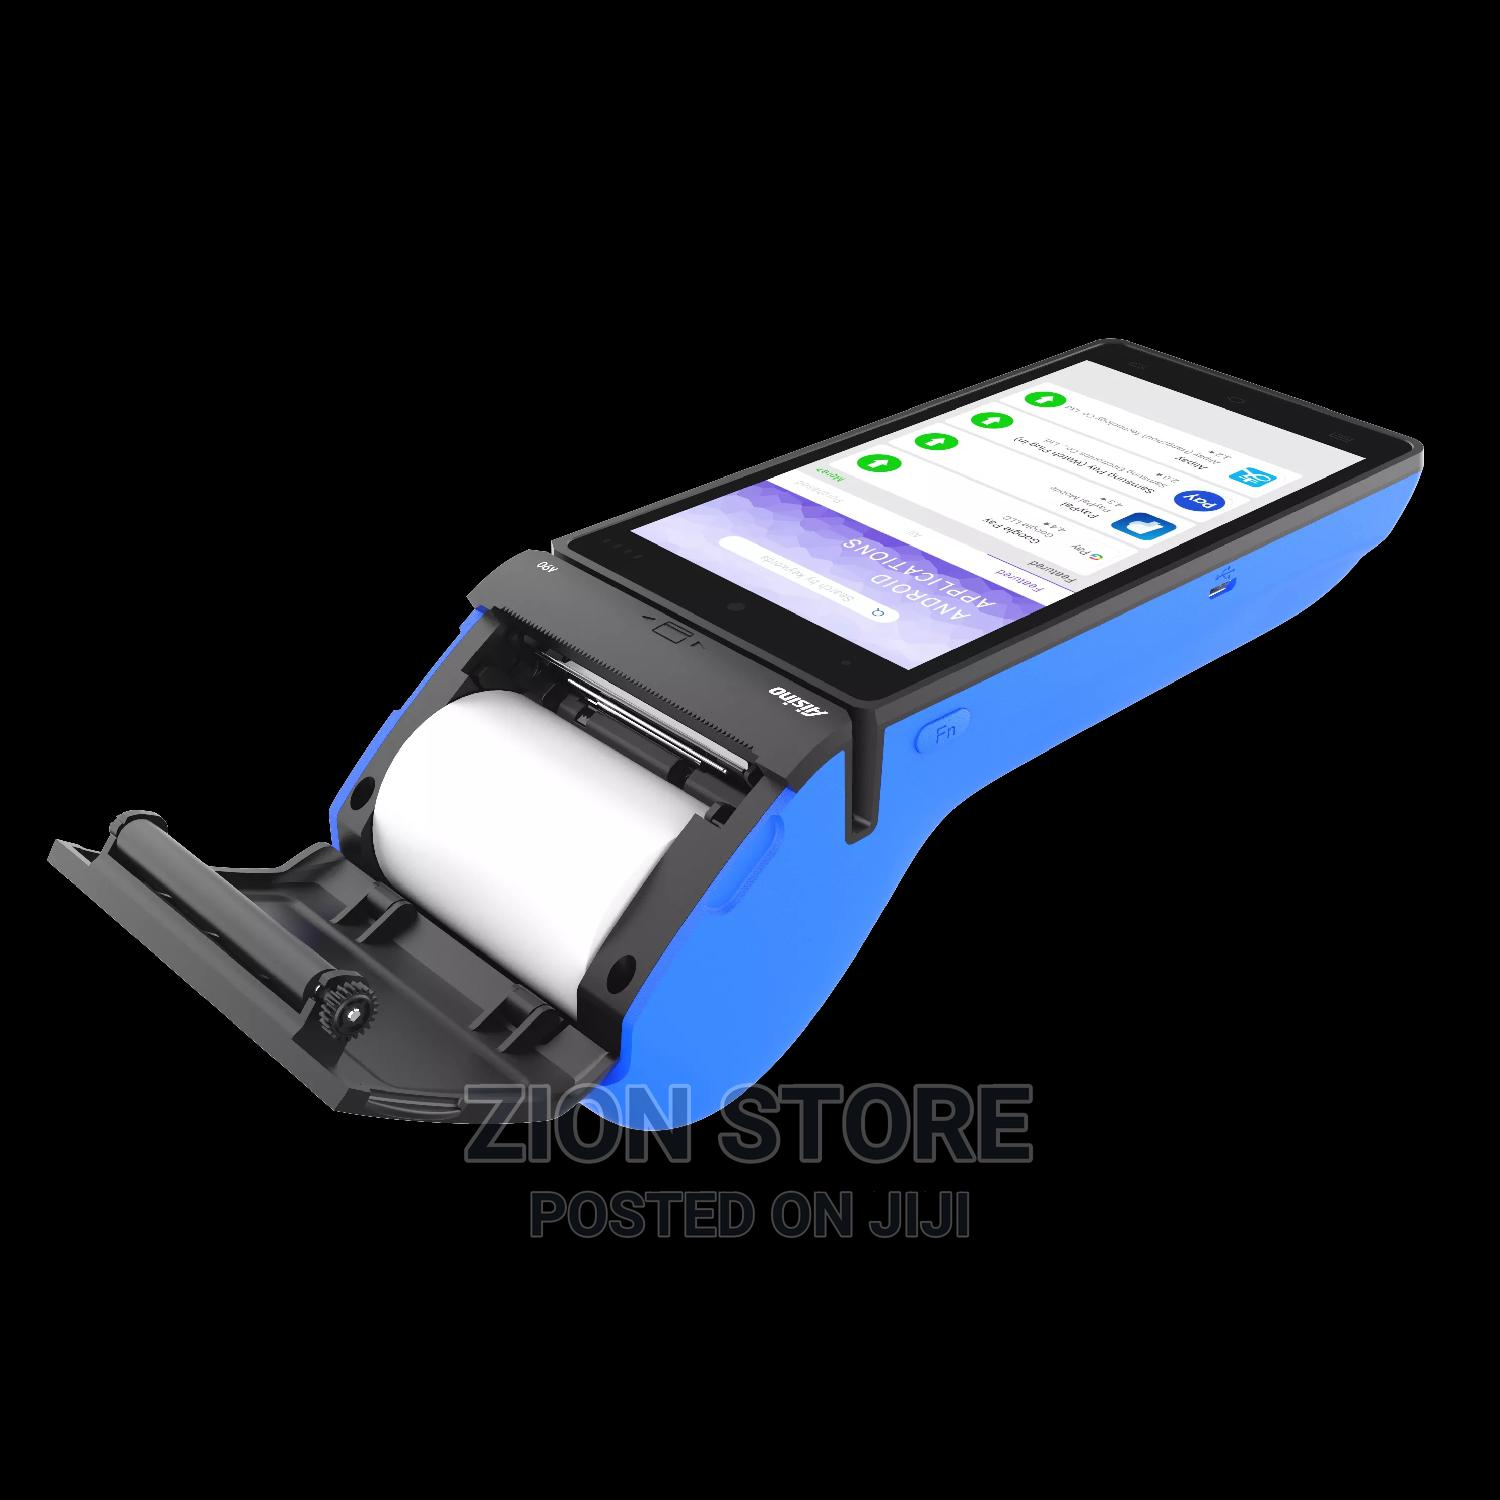 Kobopay Android Pos Terminal Available